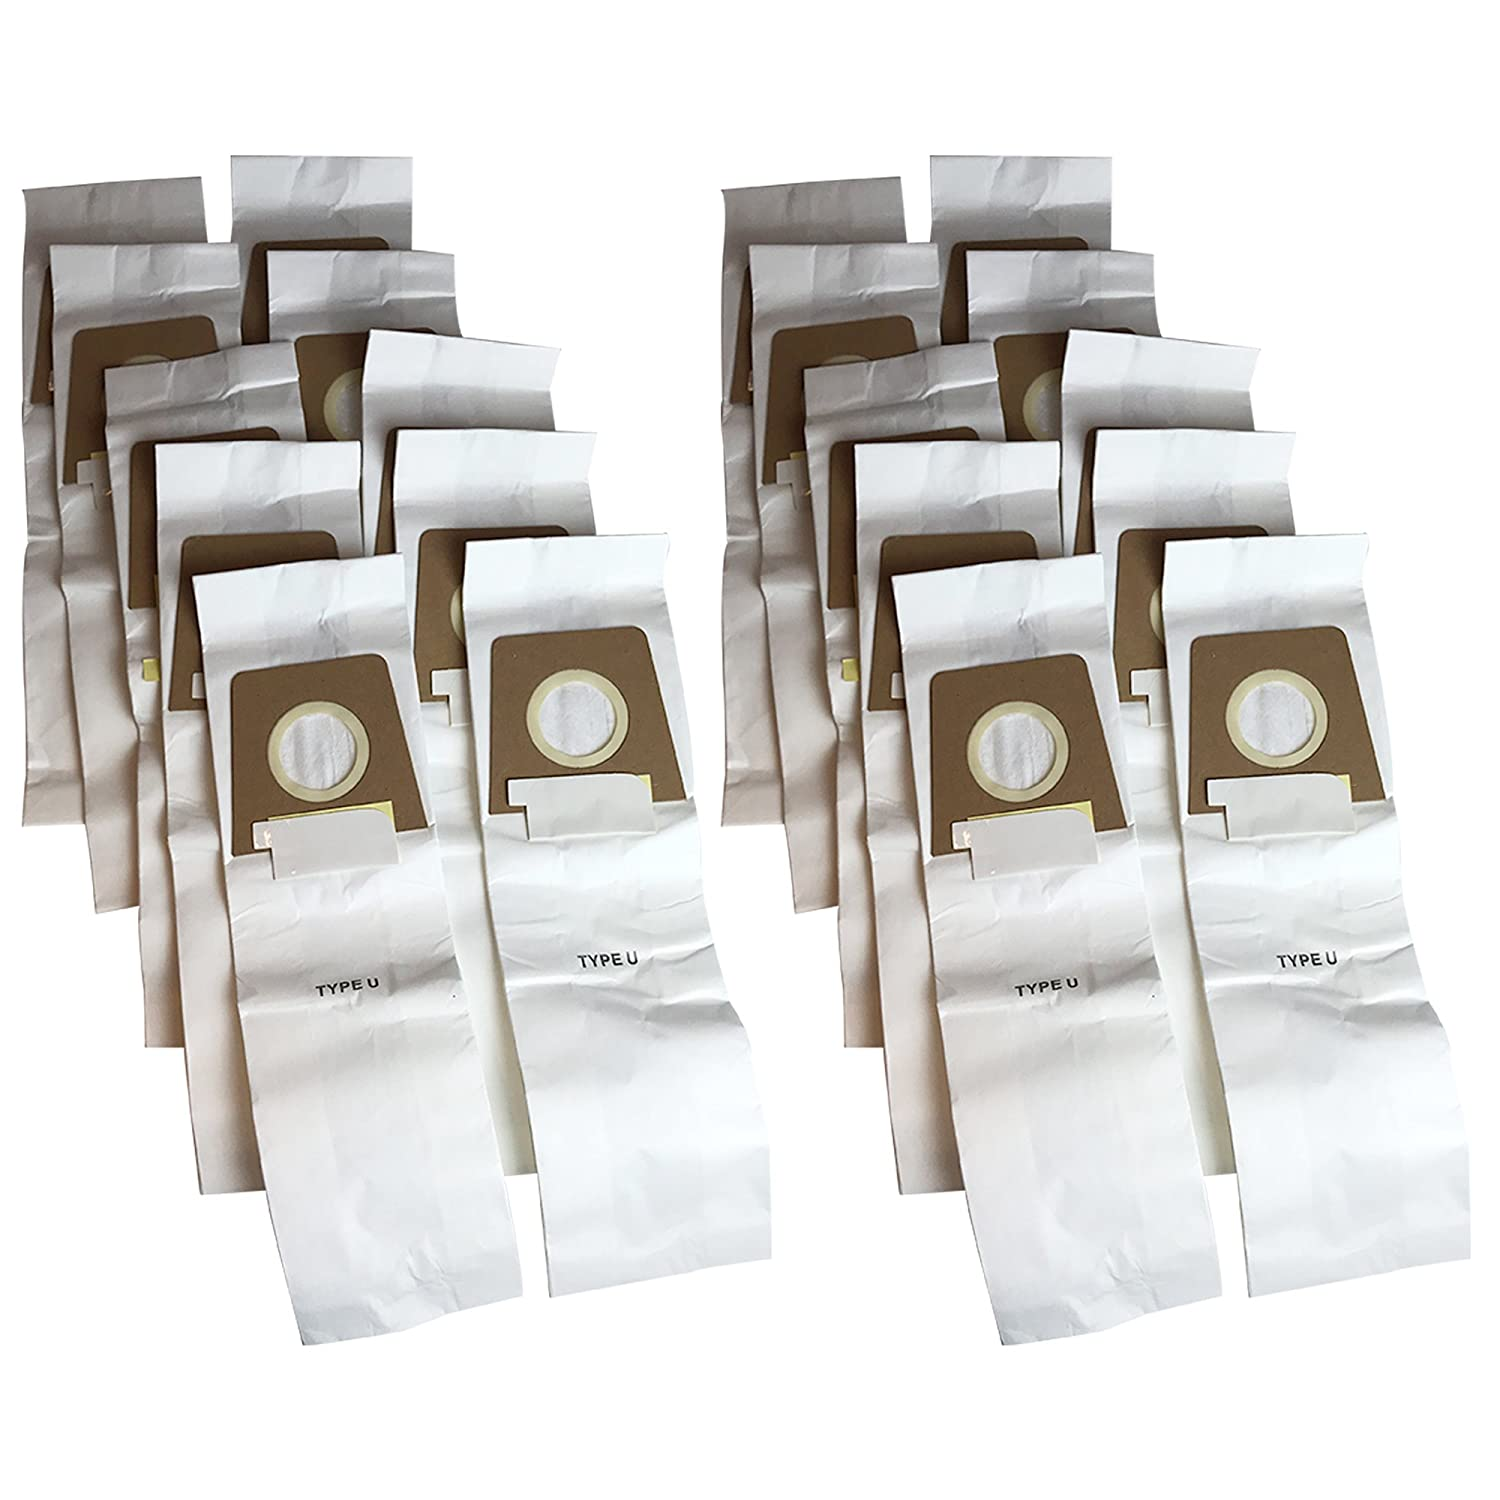 20 Dirt Devil Type U Allergen Filtration 3-Pack Vacuum Bags, Compare to Dirt Devil Part# 3920750001, 3920047001, 3920048001, Designed & Engineered by Crucial Vacuum